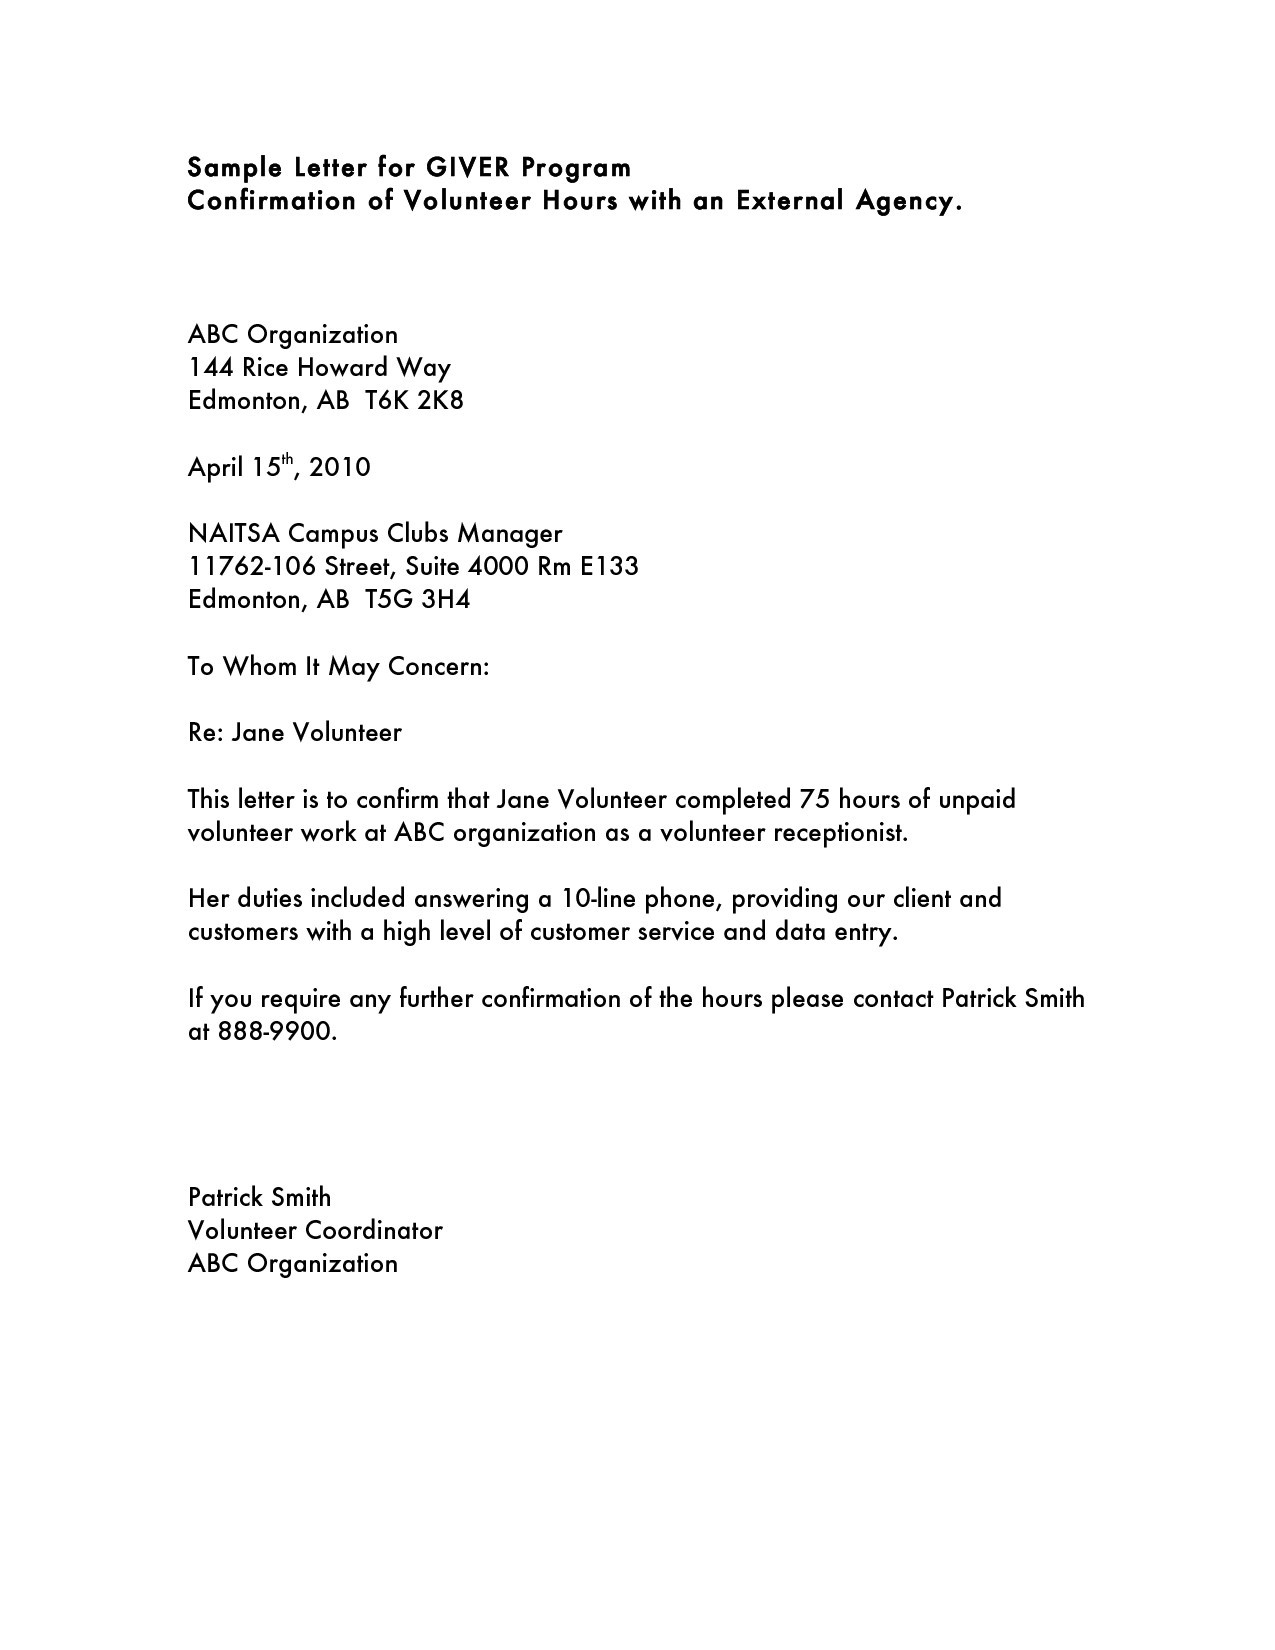 Proof of residency letter template examples letter templates proof of residency letter template lindatellingtonjones resume formats and template frees maxwellsz